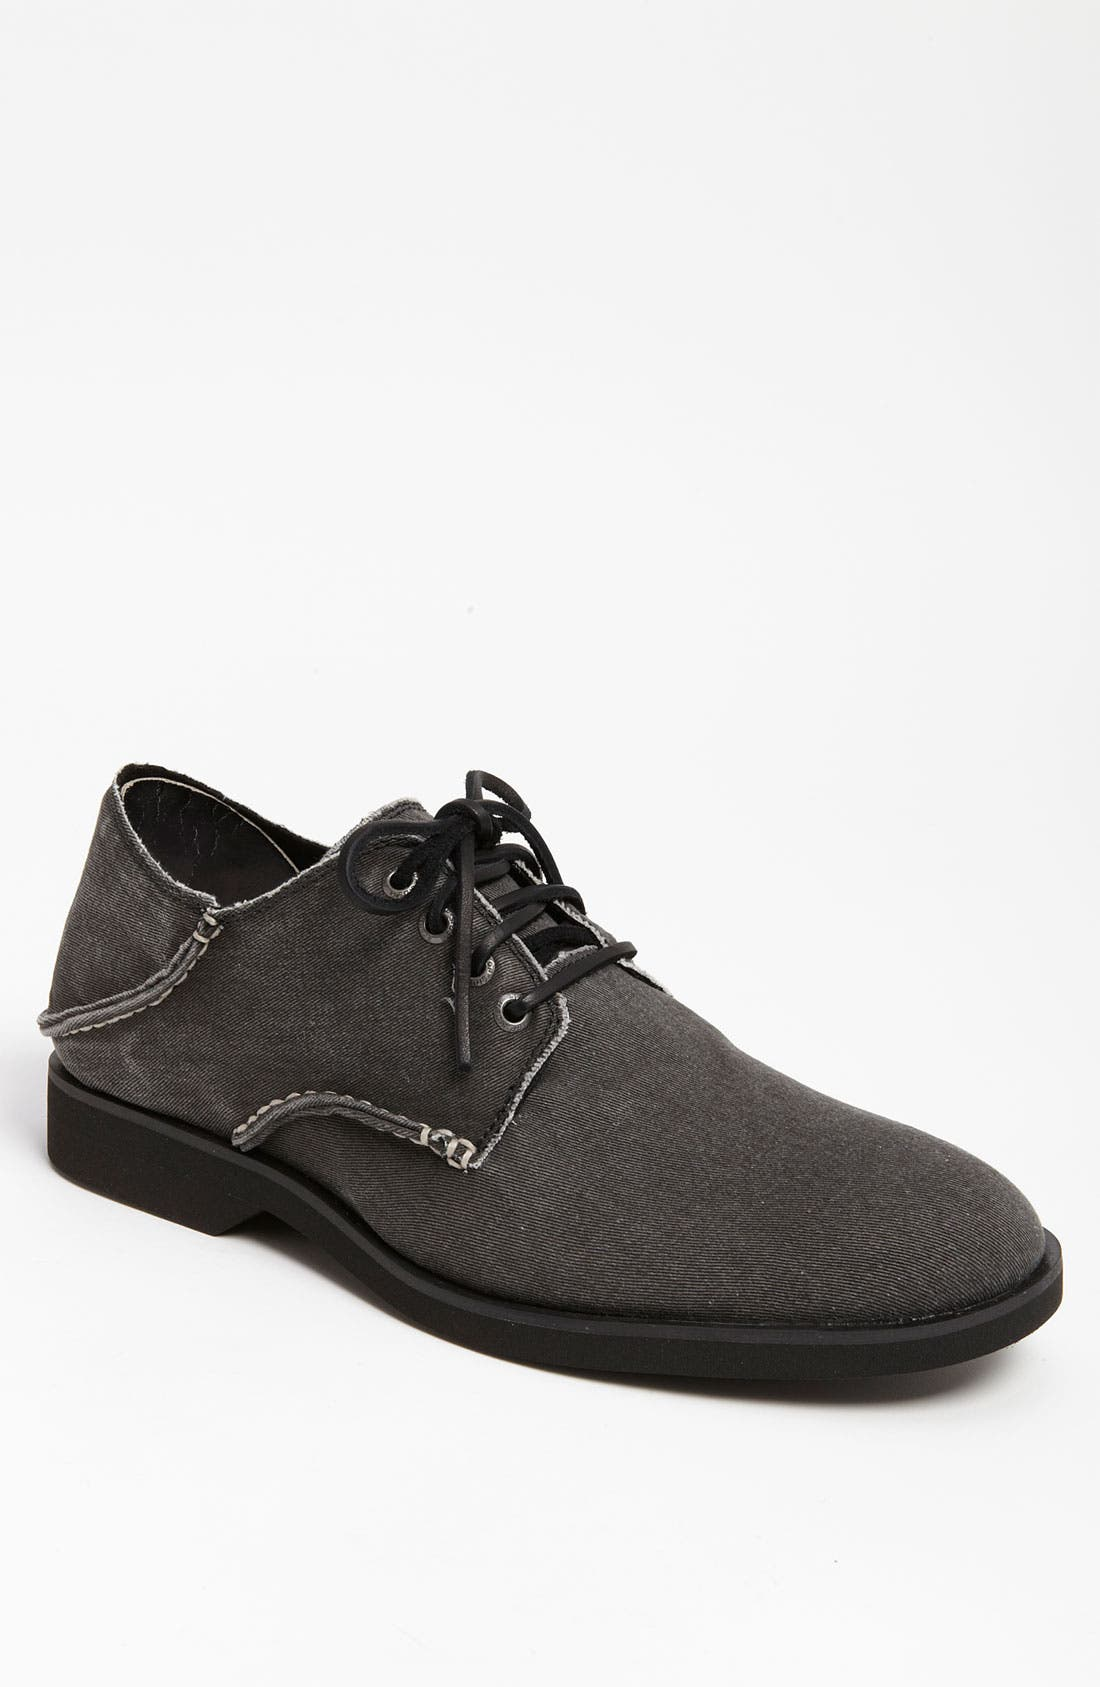 Alternate Image 1 Selected - Sperry Top-Sider® 'Boat' Oxford